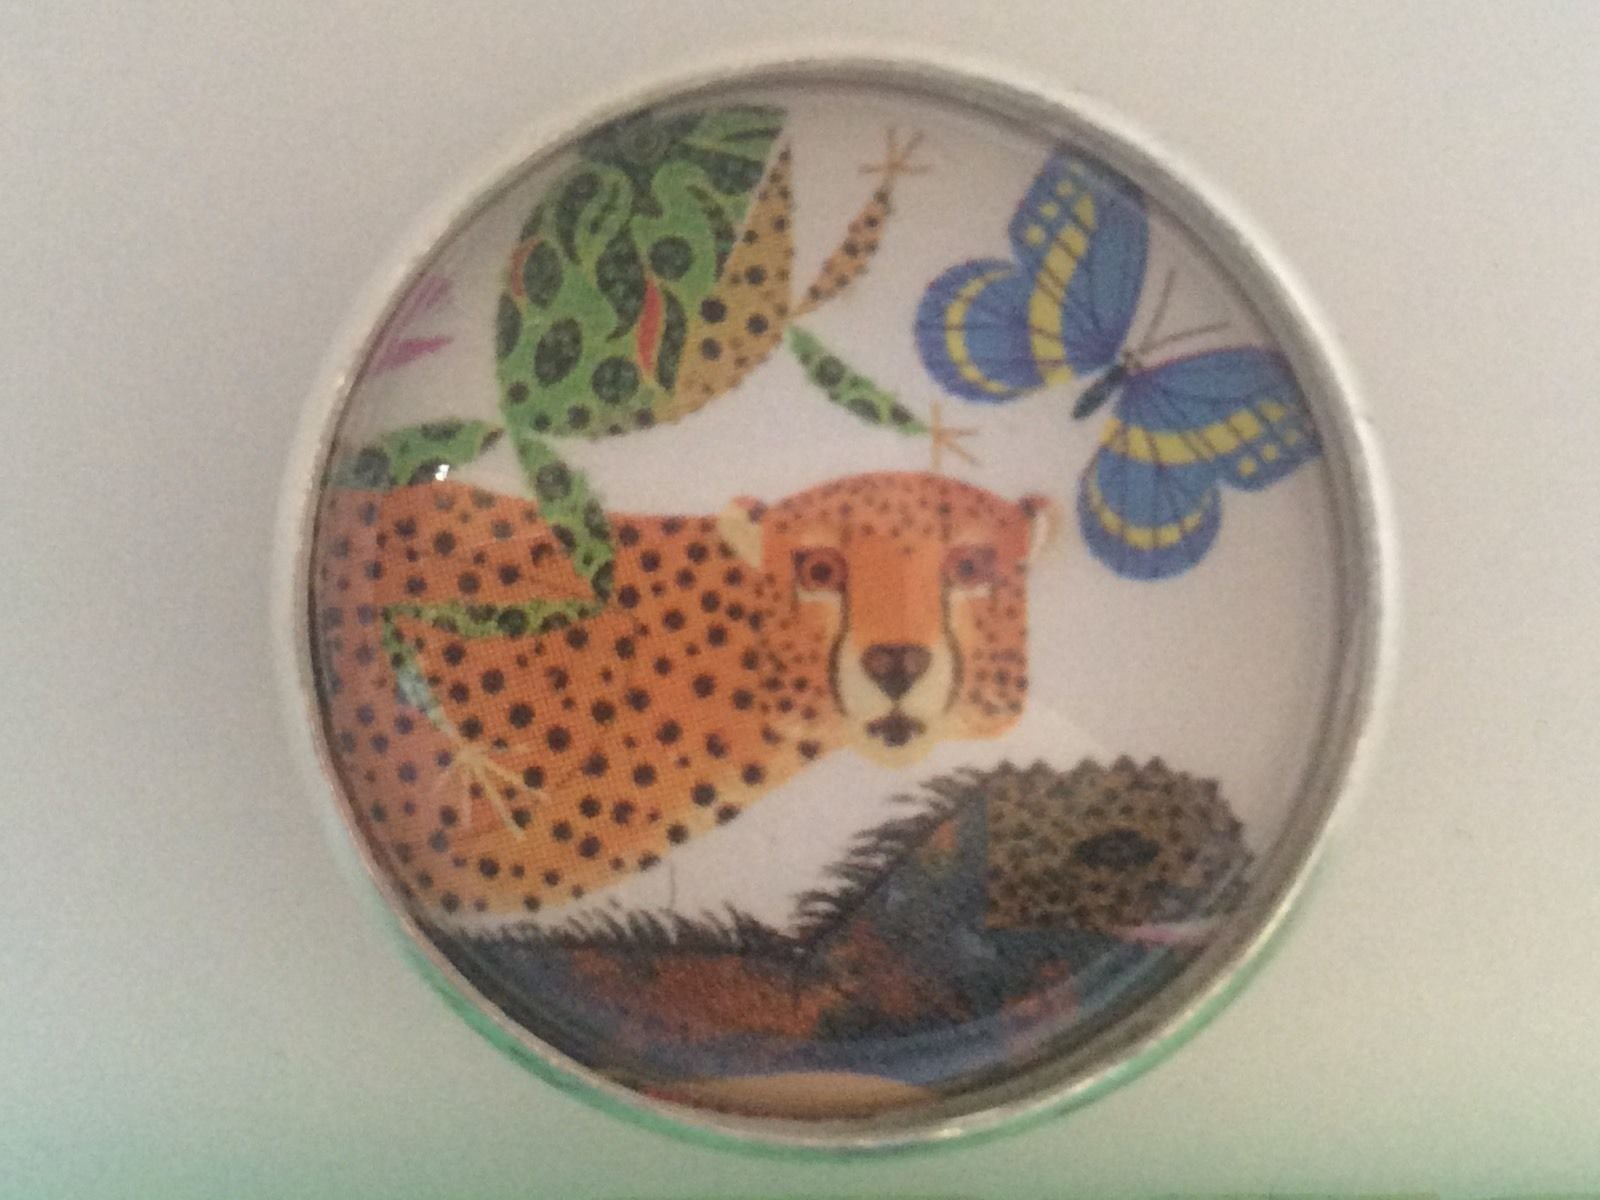 Charley Harper Cheetah Frog Jungle Cat 1 Glass Sewing Button Charles AK31